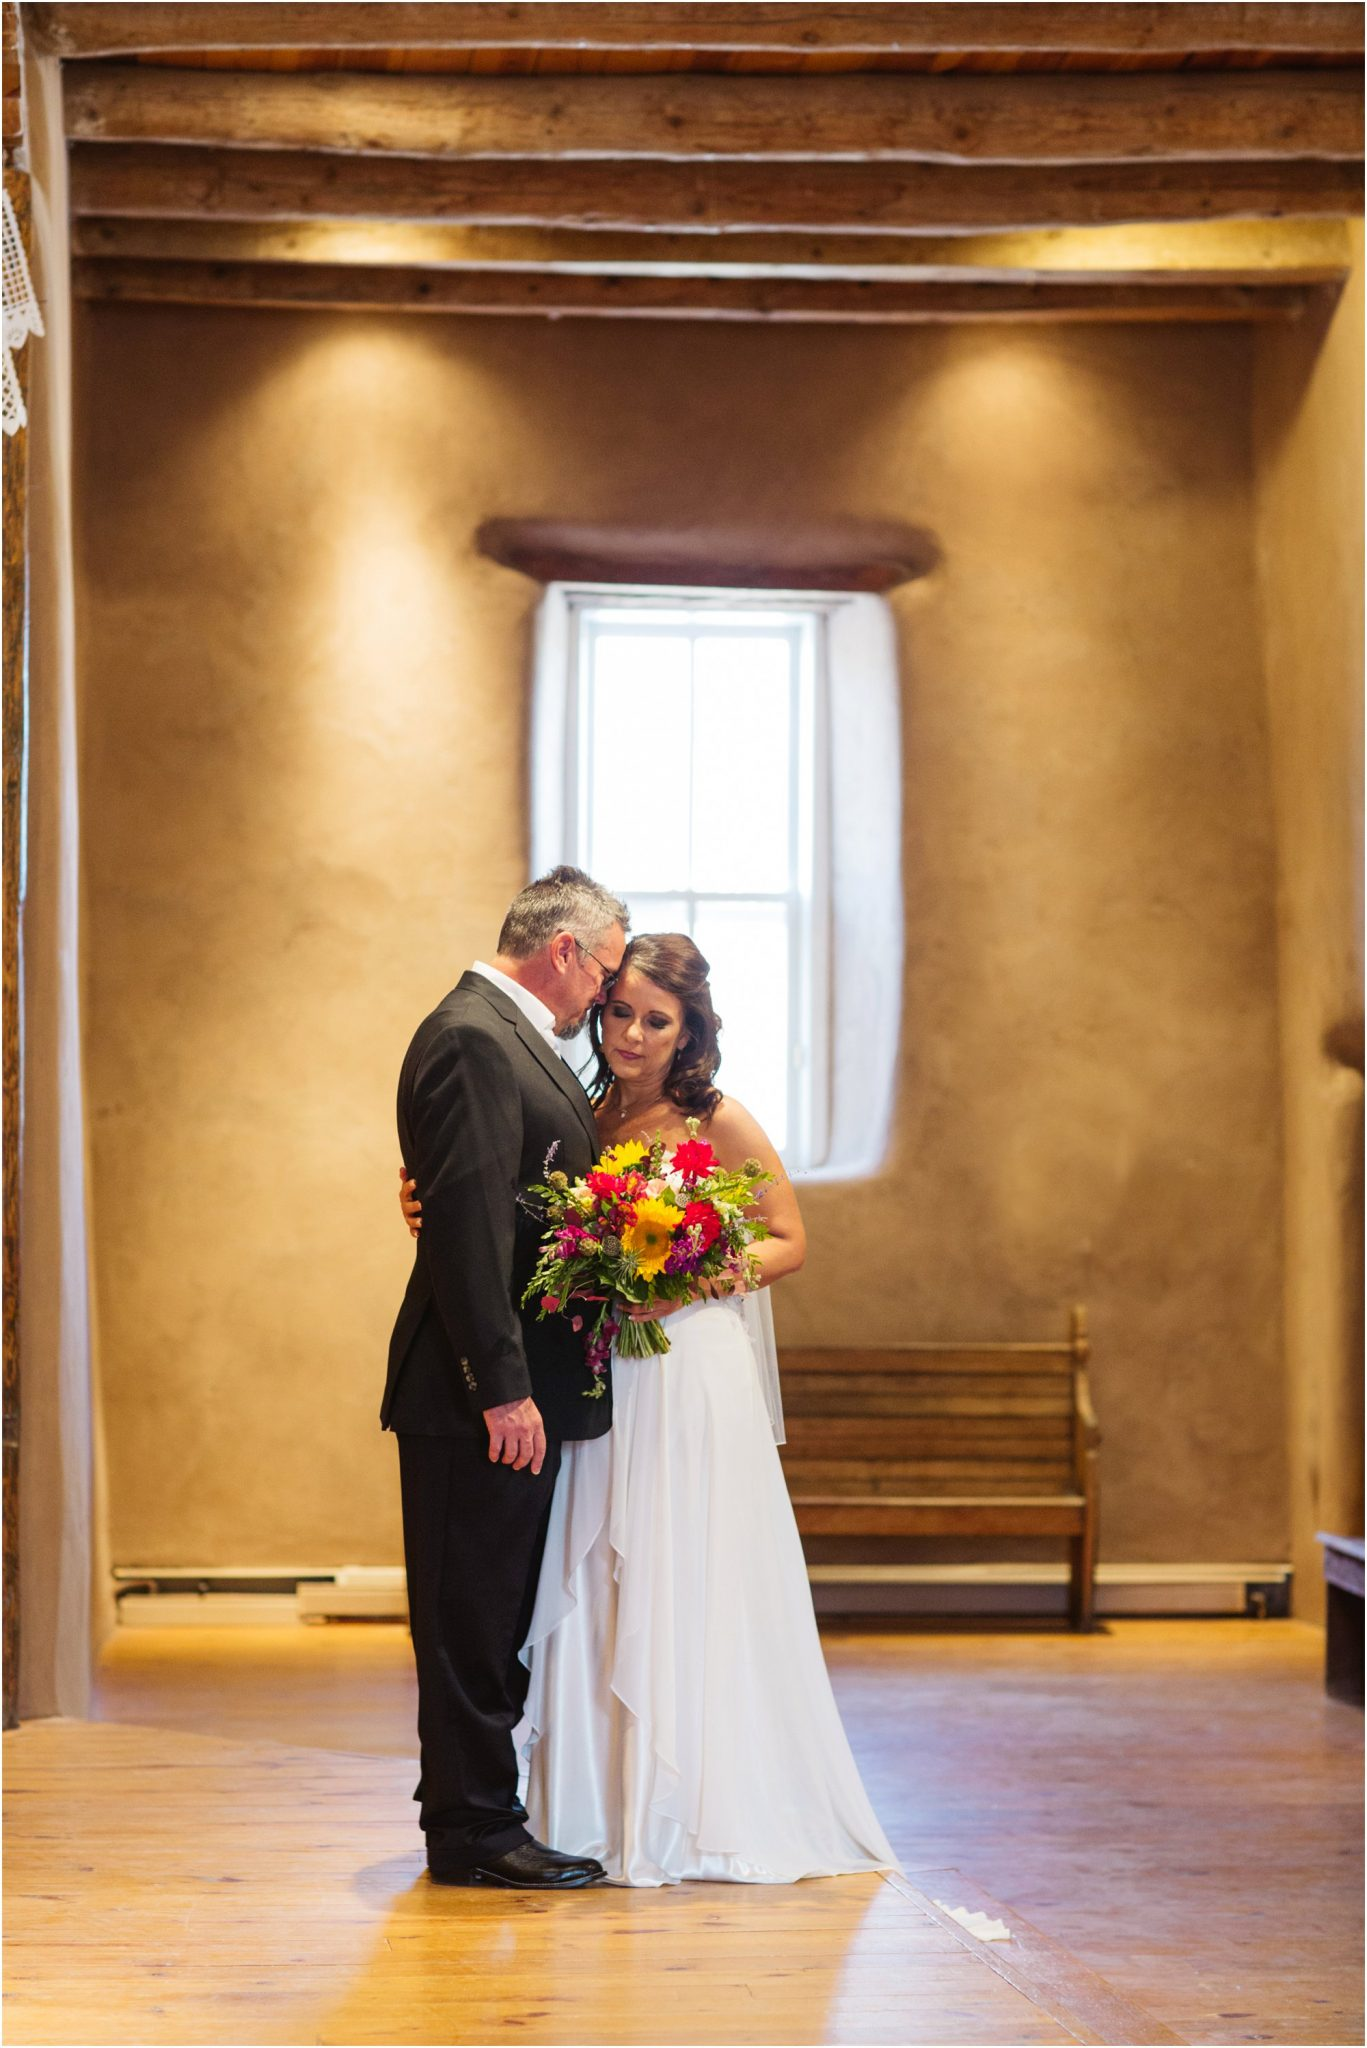 051BlueRosePhotography_ Albuquerque wedding photographers